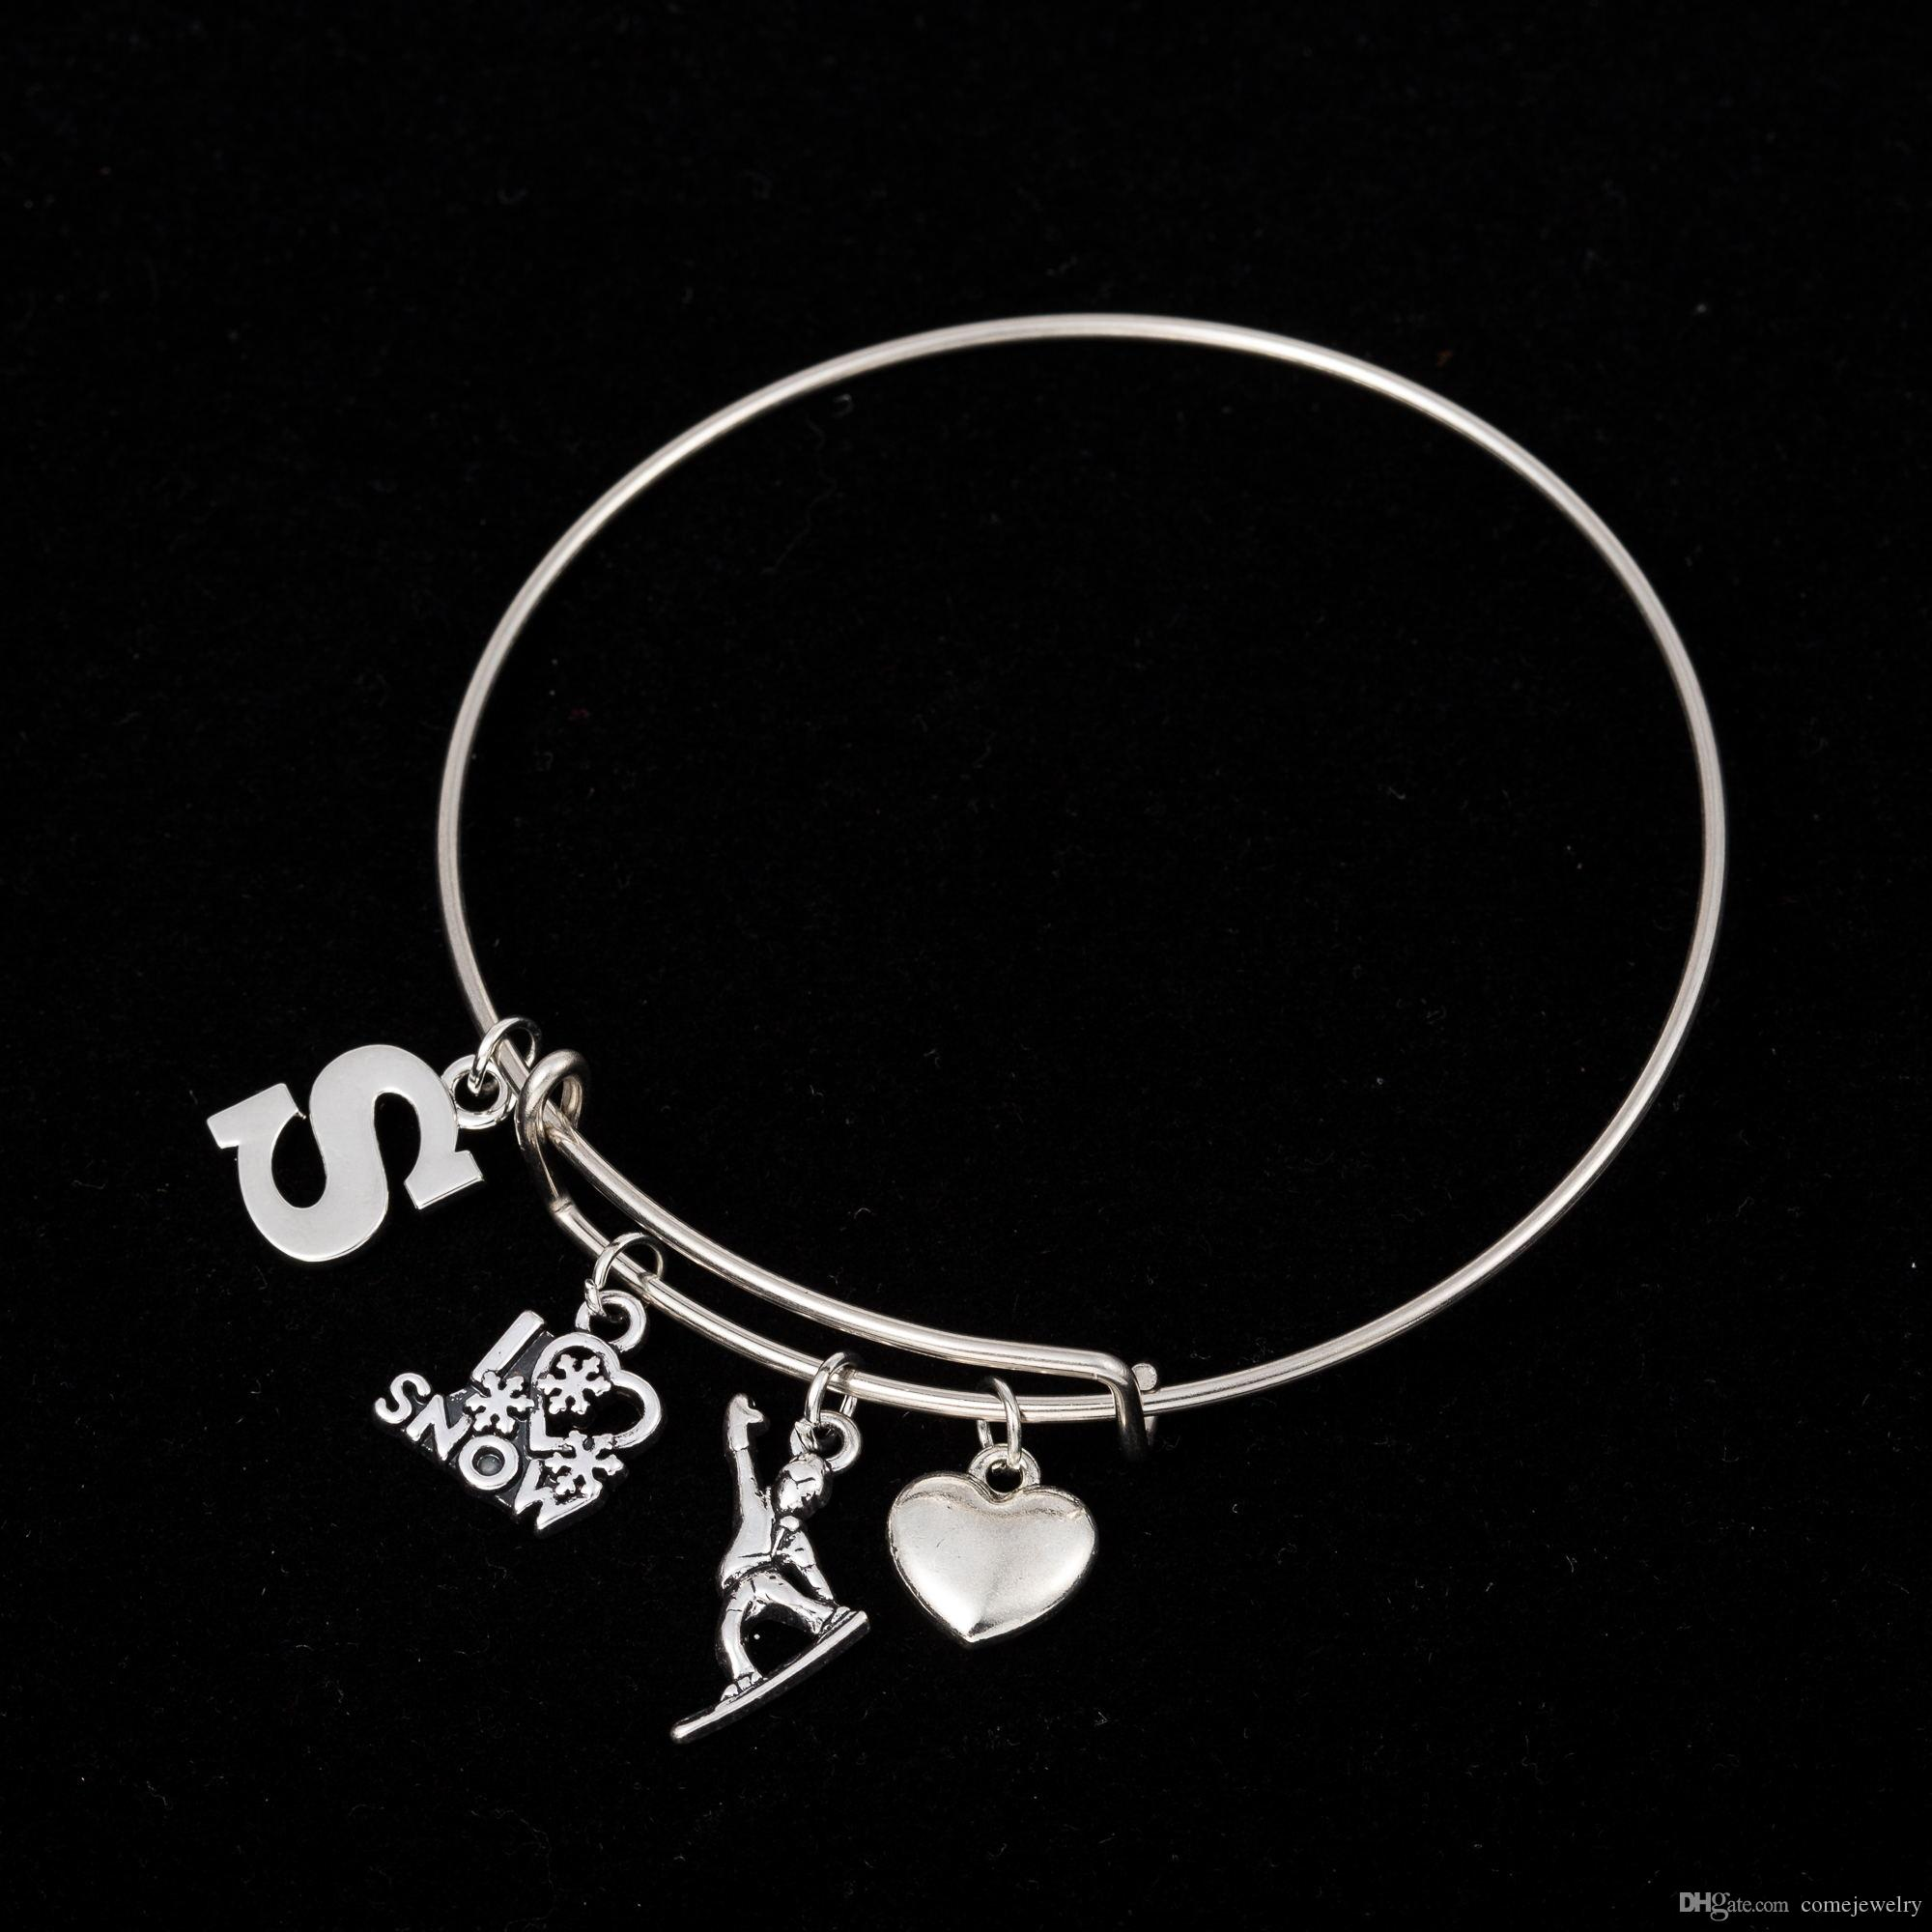 heart listing about steel bracelet gallery photo long blank il bracelets fullxfull stainless charm bangle bangles